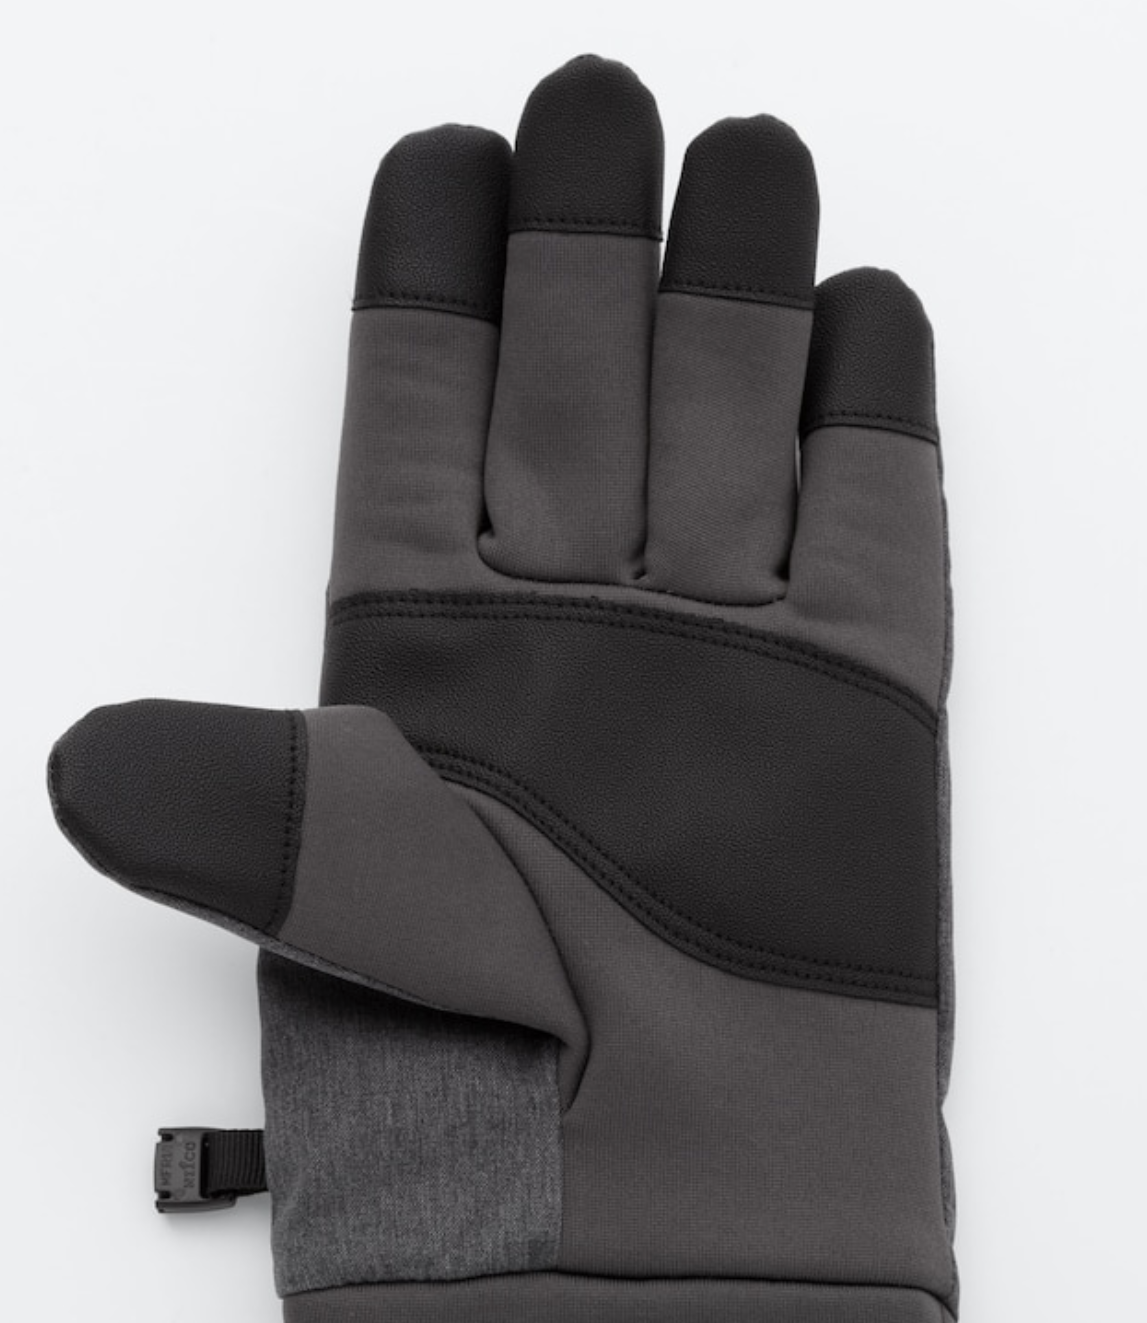 Heattech-lined function gloves